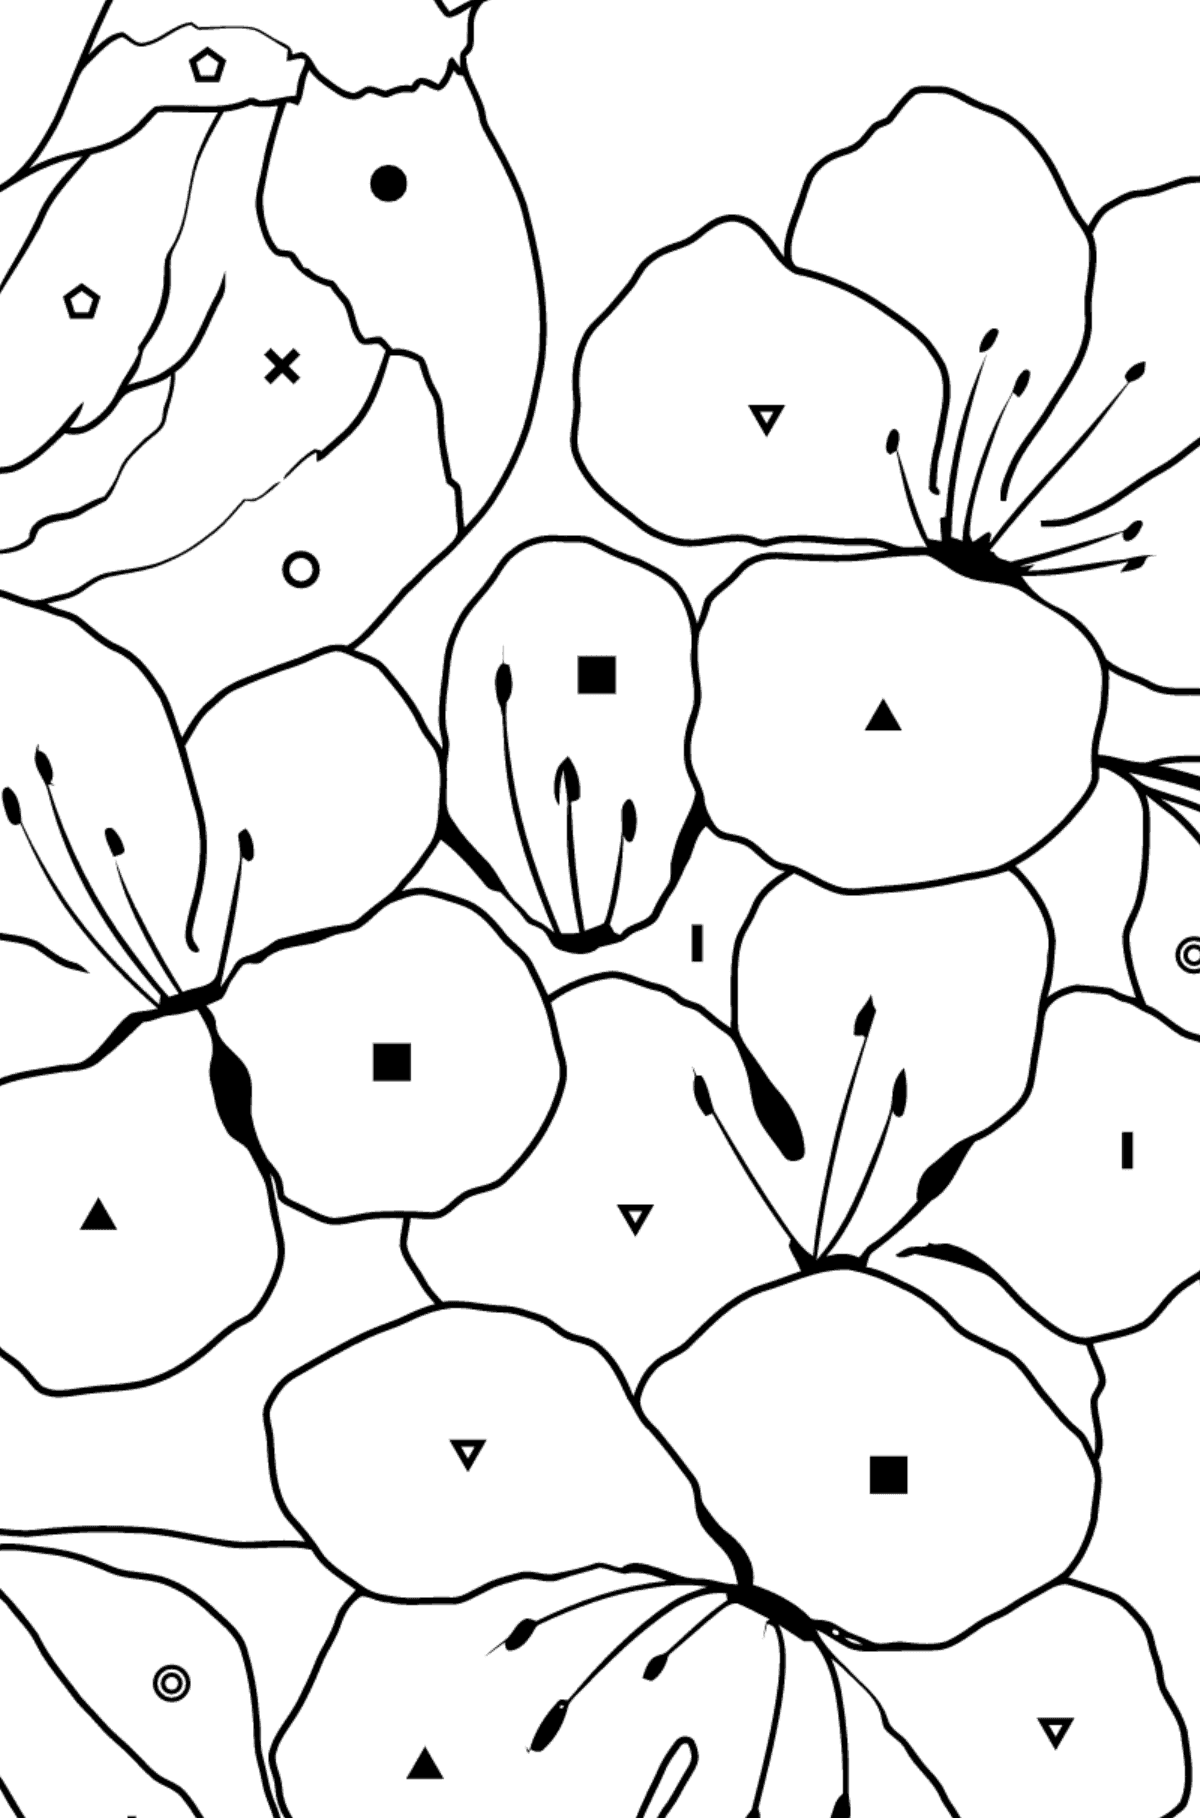 Summer Coloring Page - A Bird is Chirping on the Branch of an Apple Tree for Kids  - Color by Symbols and Geometric Shapes